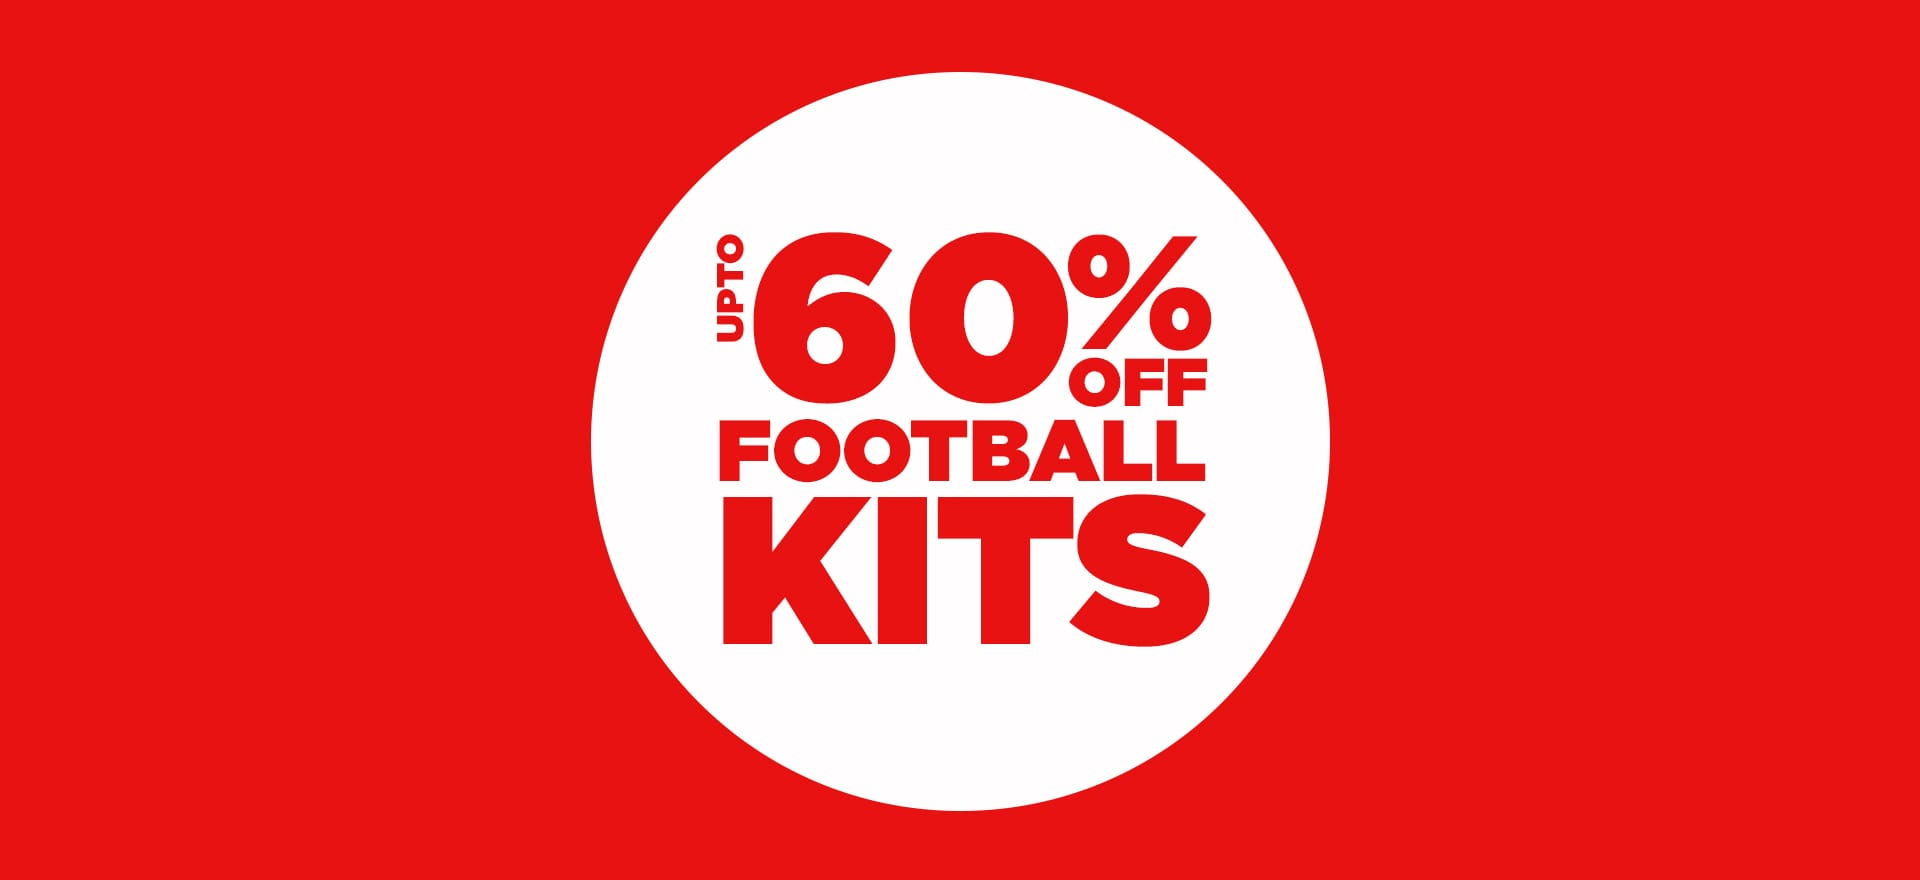 FOOTBALL KIT SALE